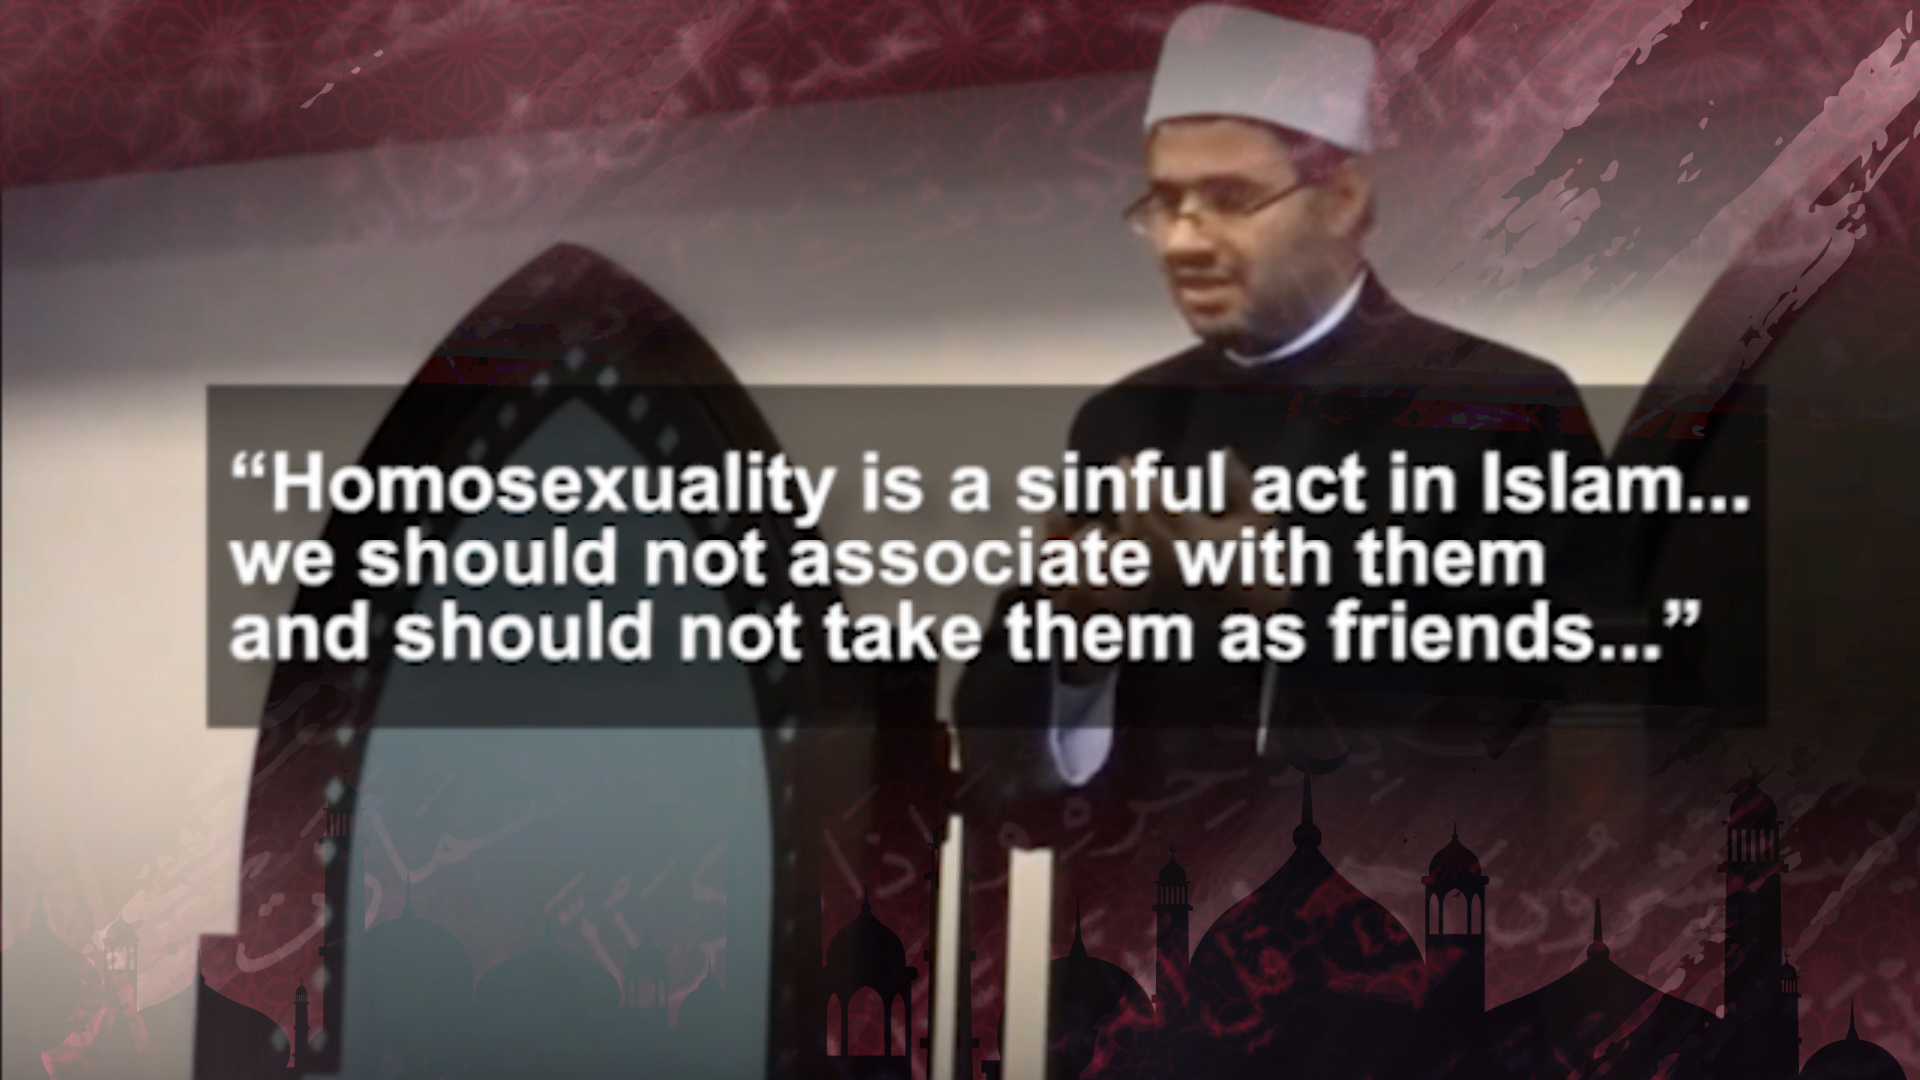 Islam against homosexuality